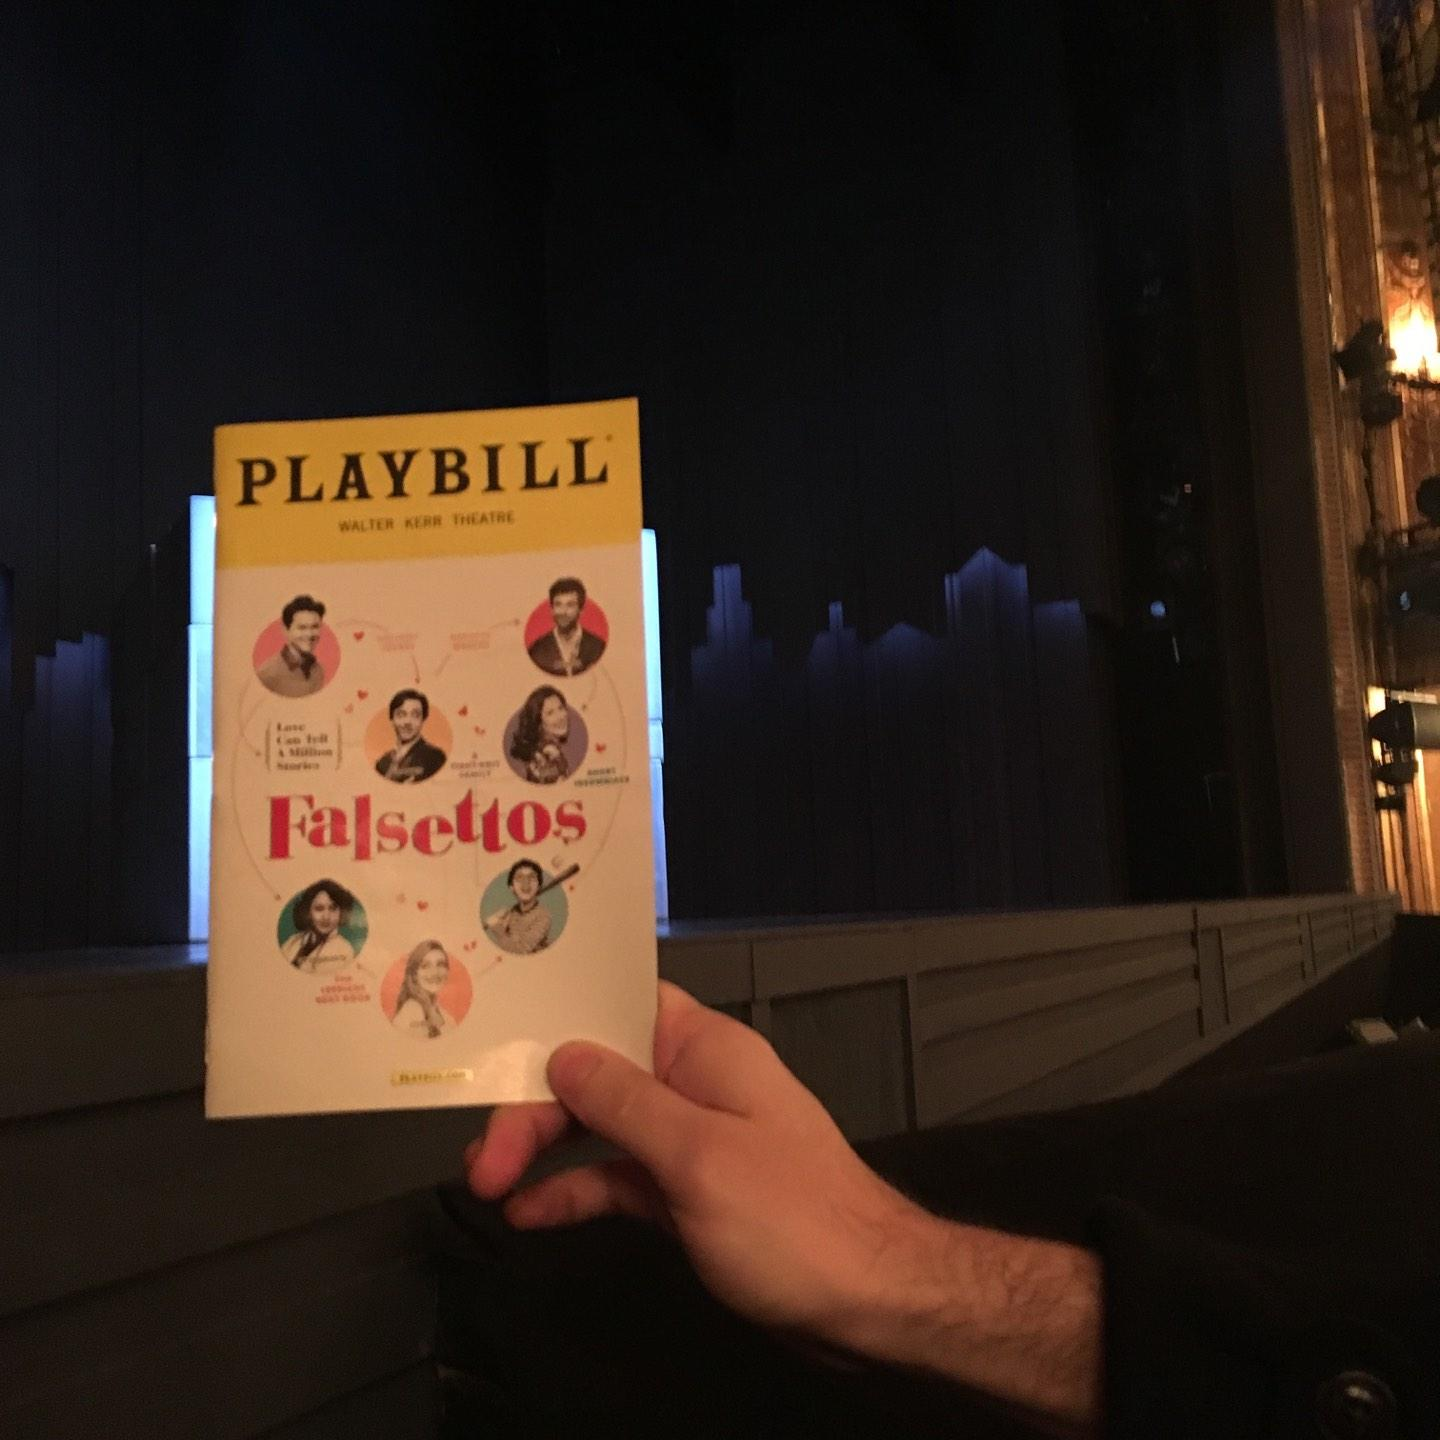 Walter Kerr Theatre Section OrchL Row B Seat 7